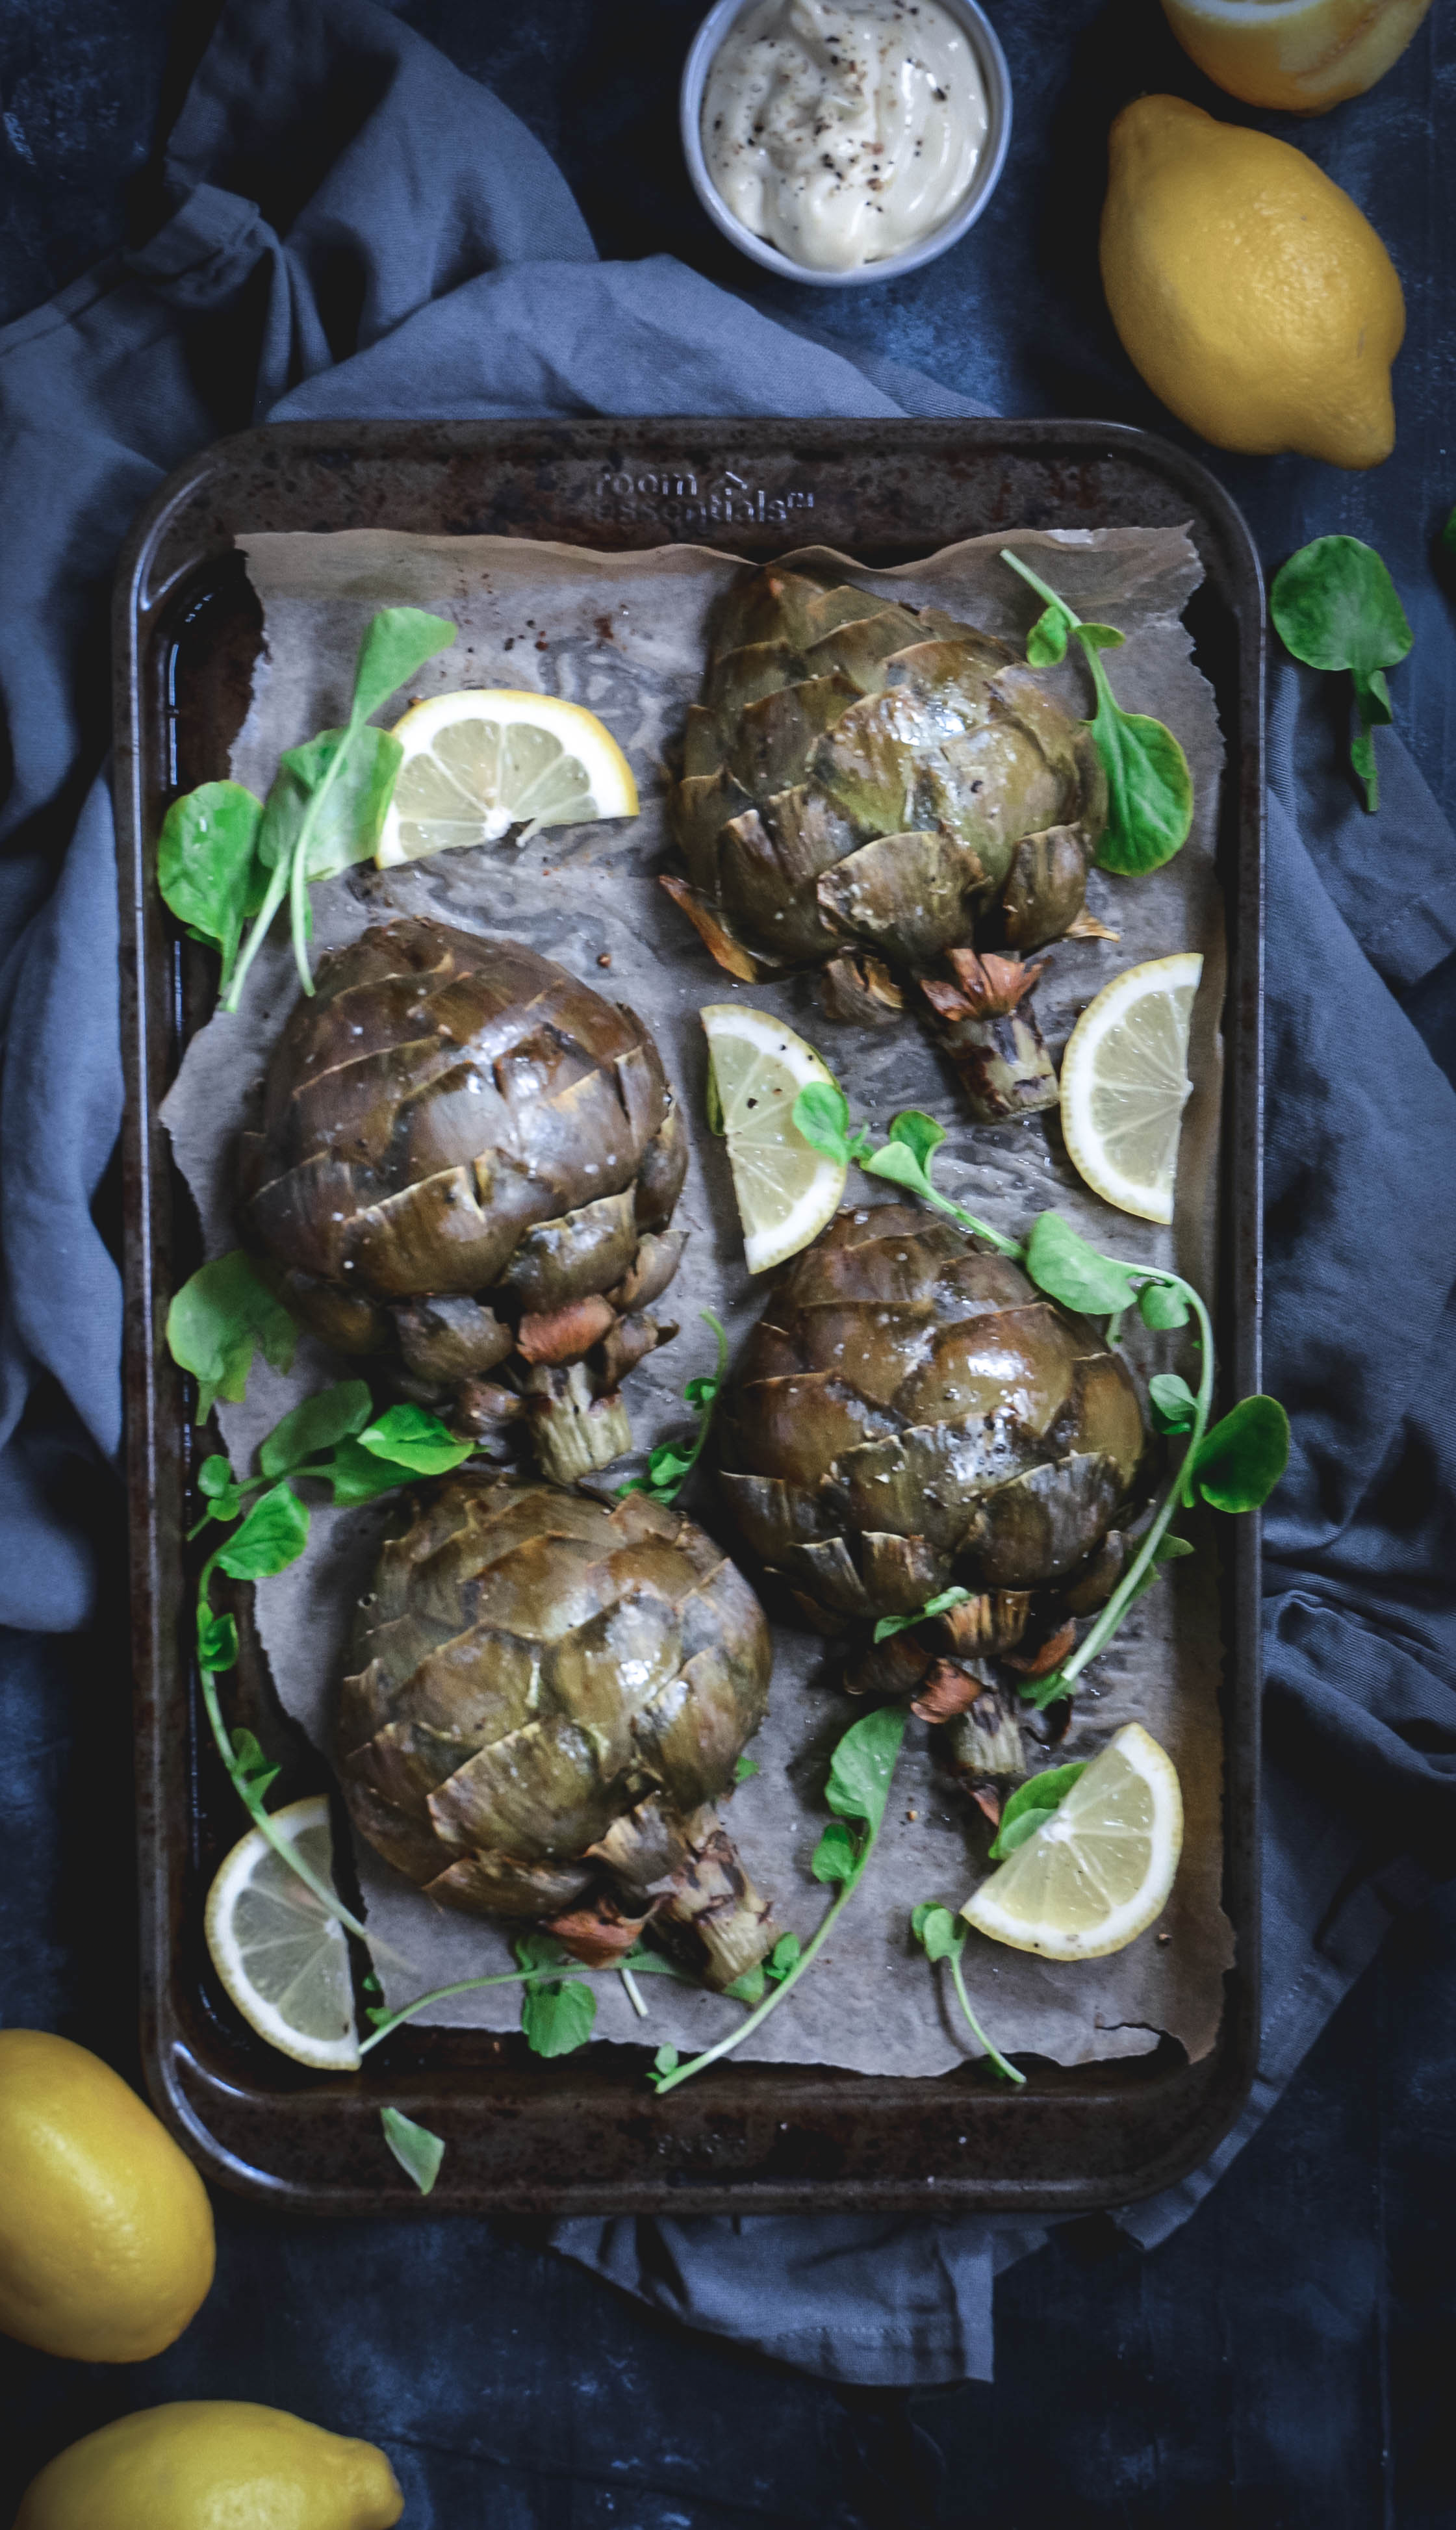 roasted artichokes with lemon slices and lemon aioli and greens